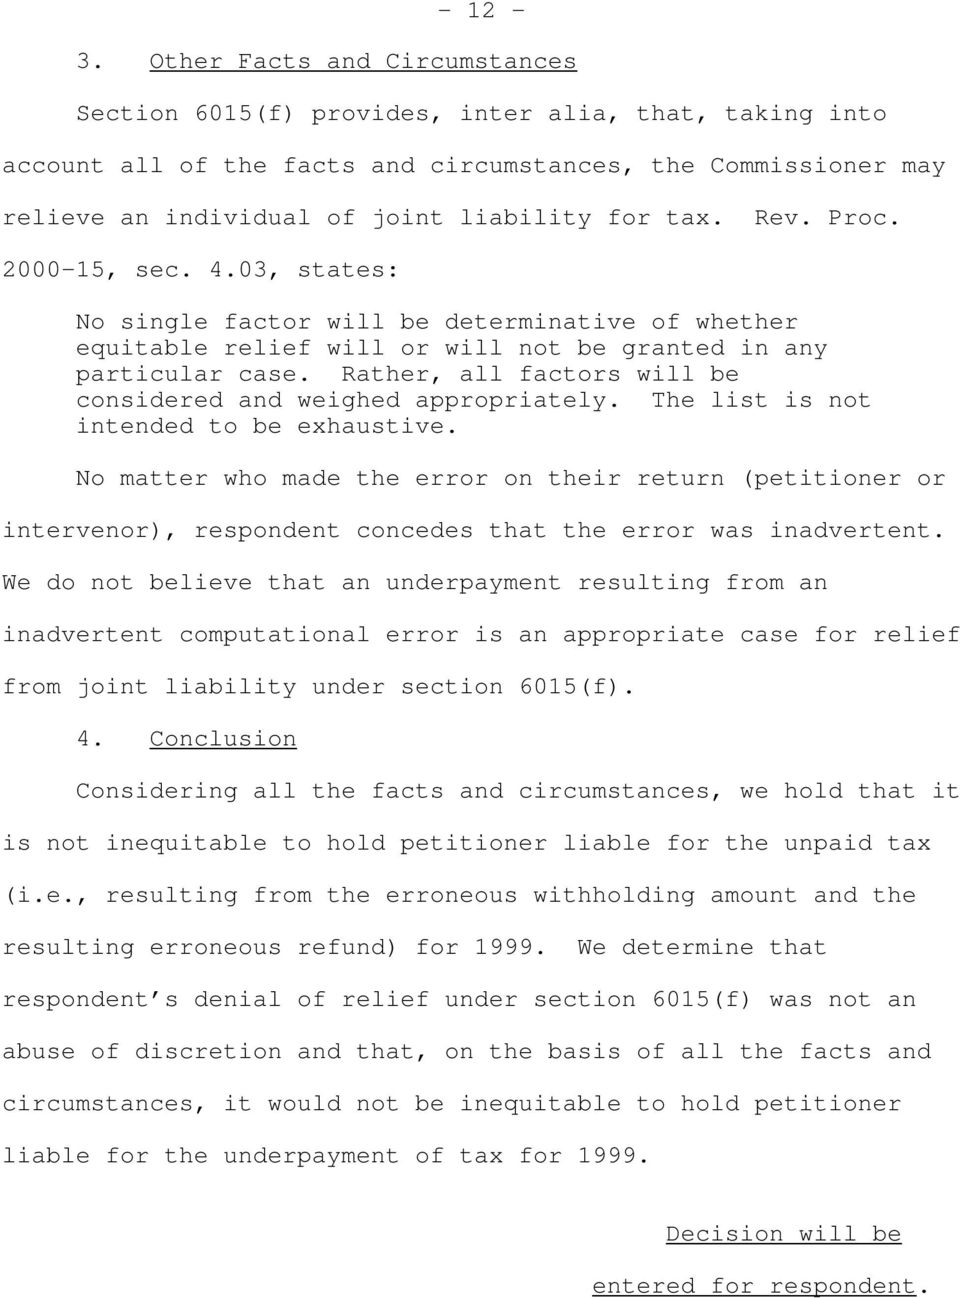 Rev. Proc. 2000-15, sec. 4.03, states: No single factor will be determinative of whether equitable relief will or will not be granted in any particular case.